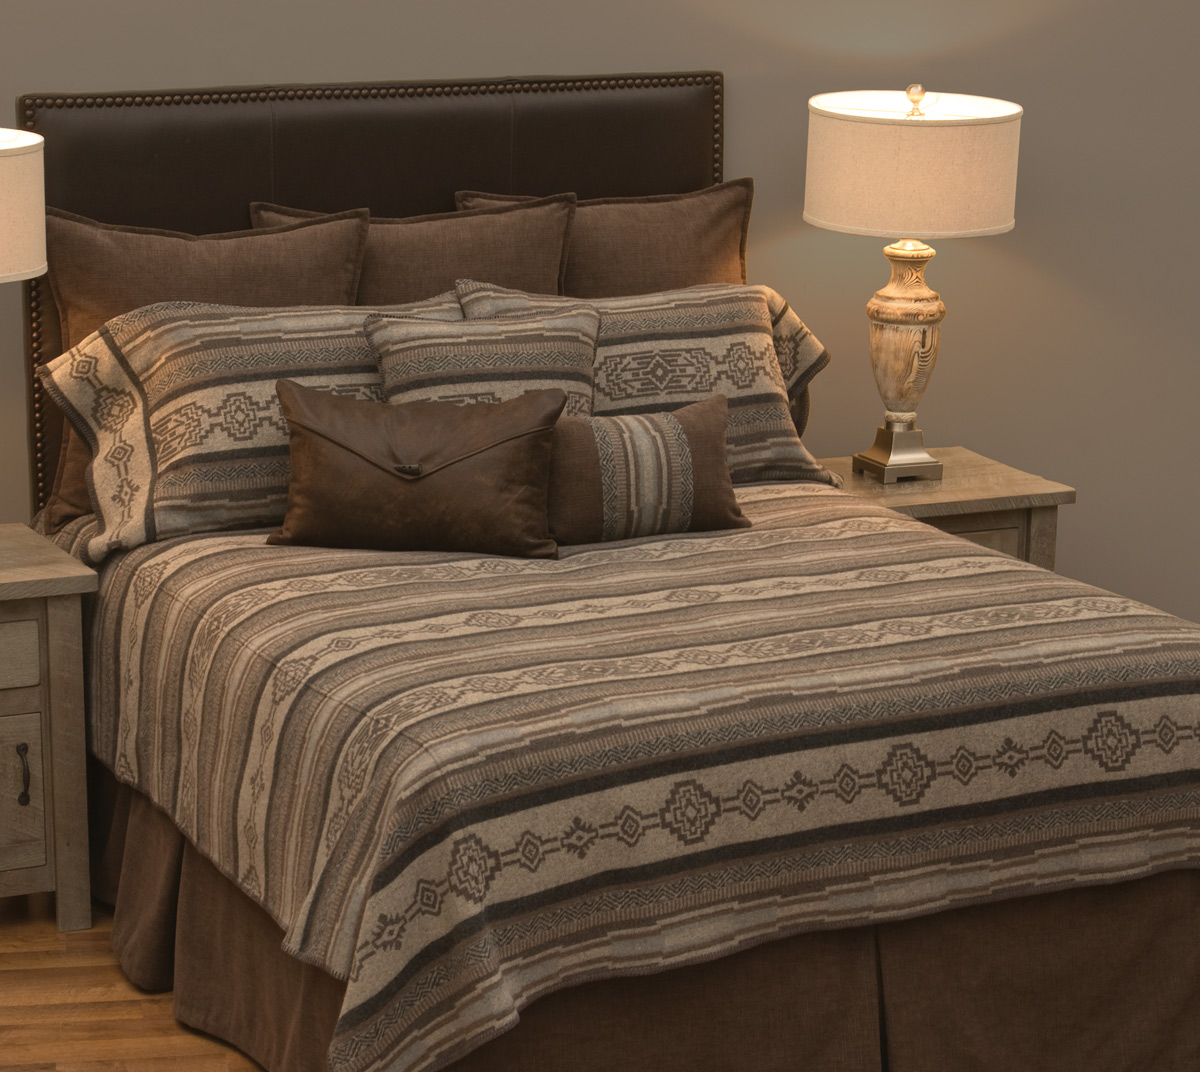 Black Forest Decor Lodge lux basic bed set - twin